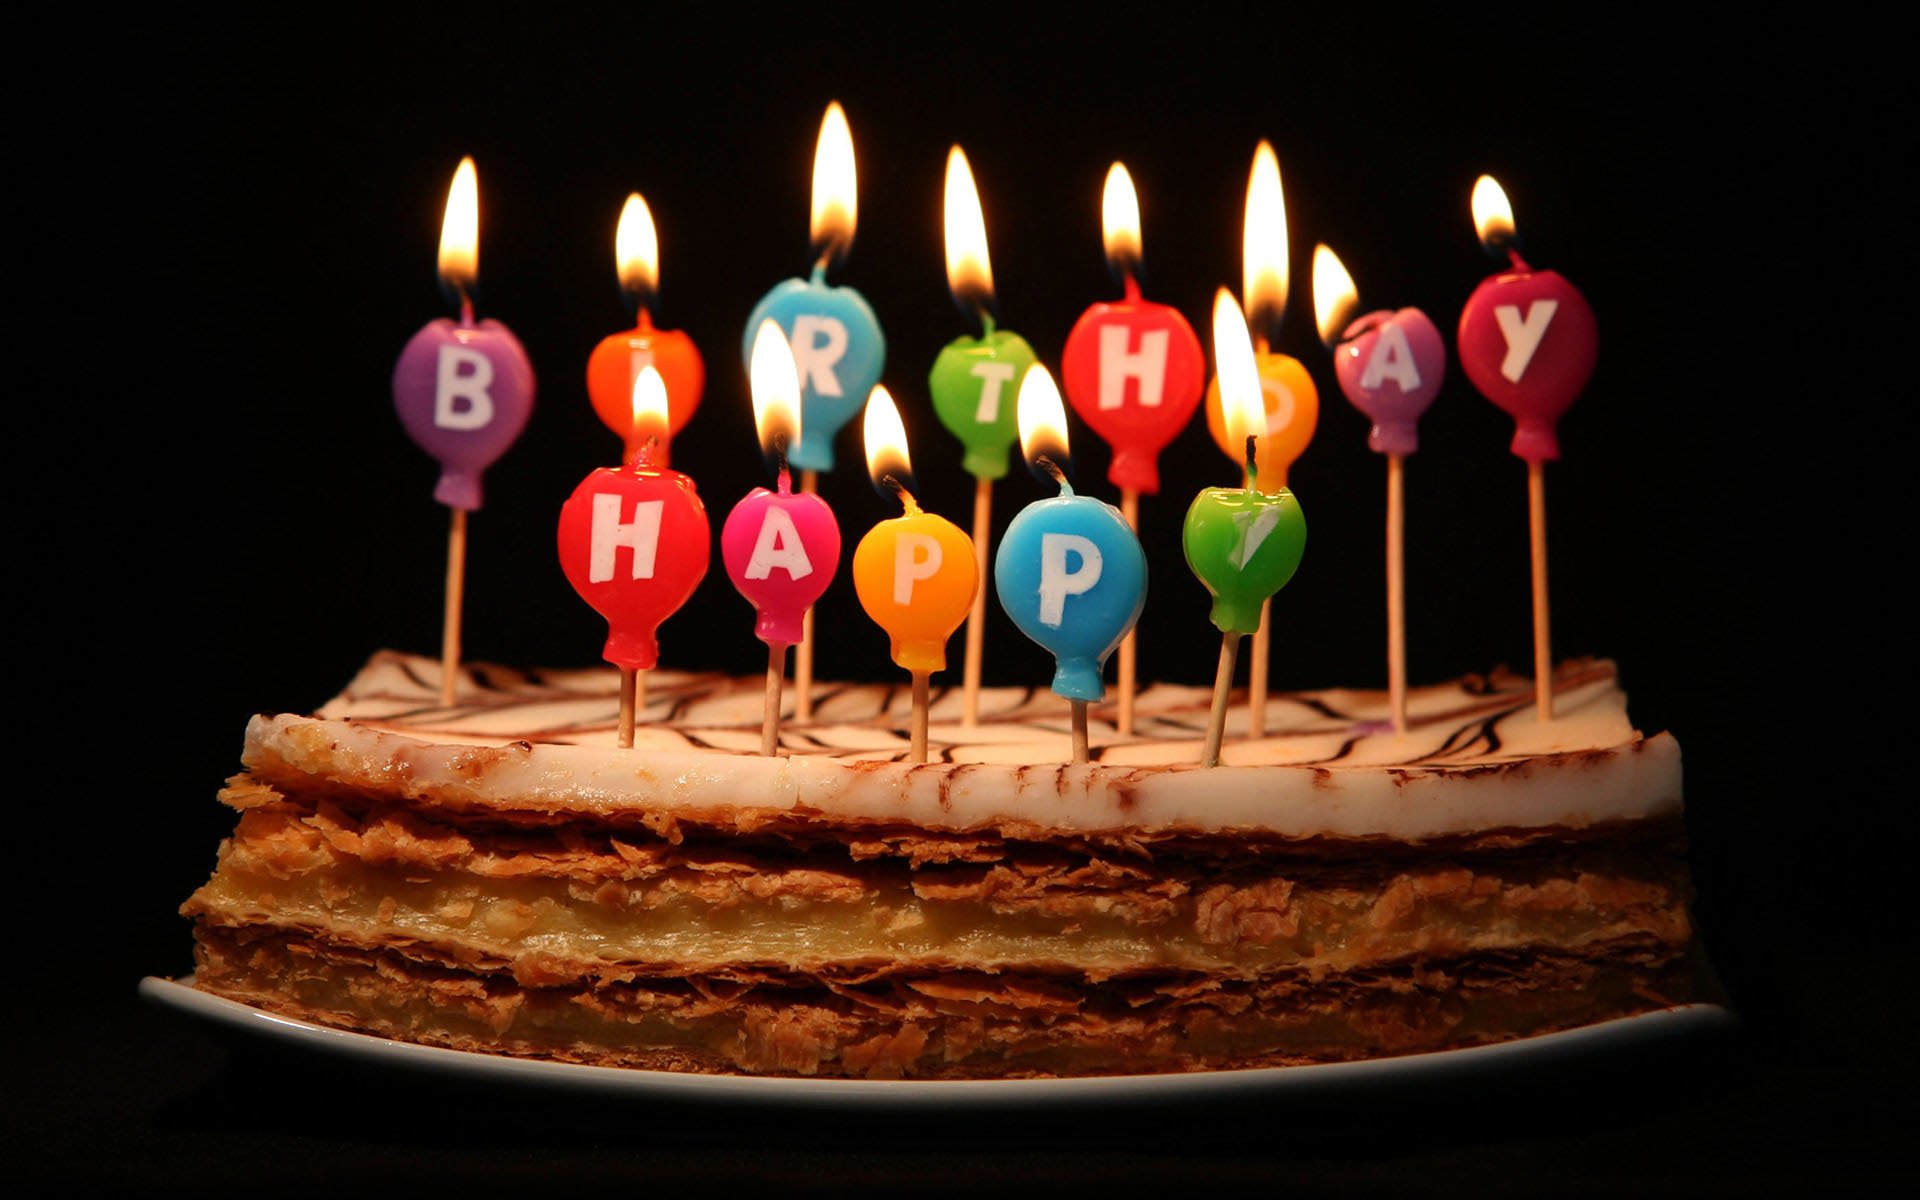 happy birthday hd images download ; 35894445-happy-birthday-hd-images